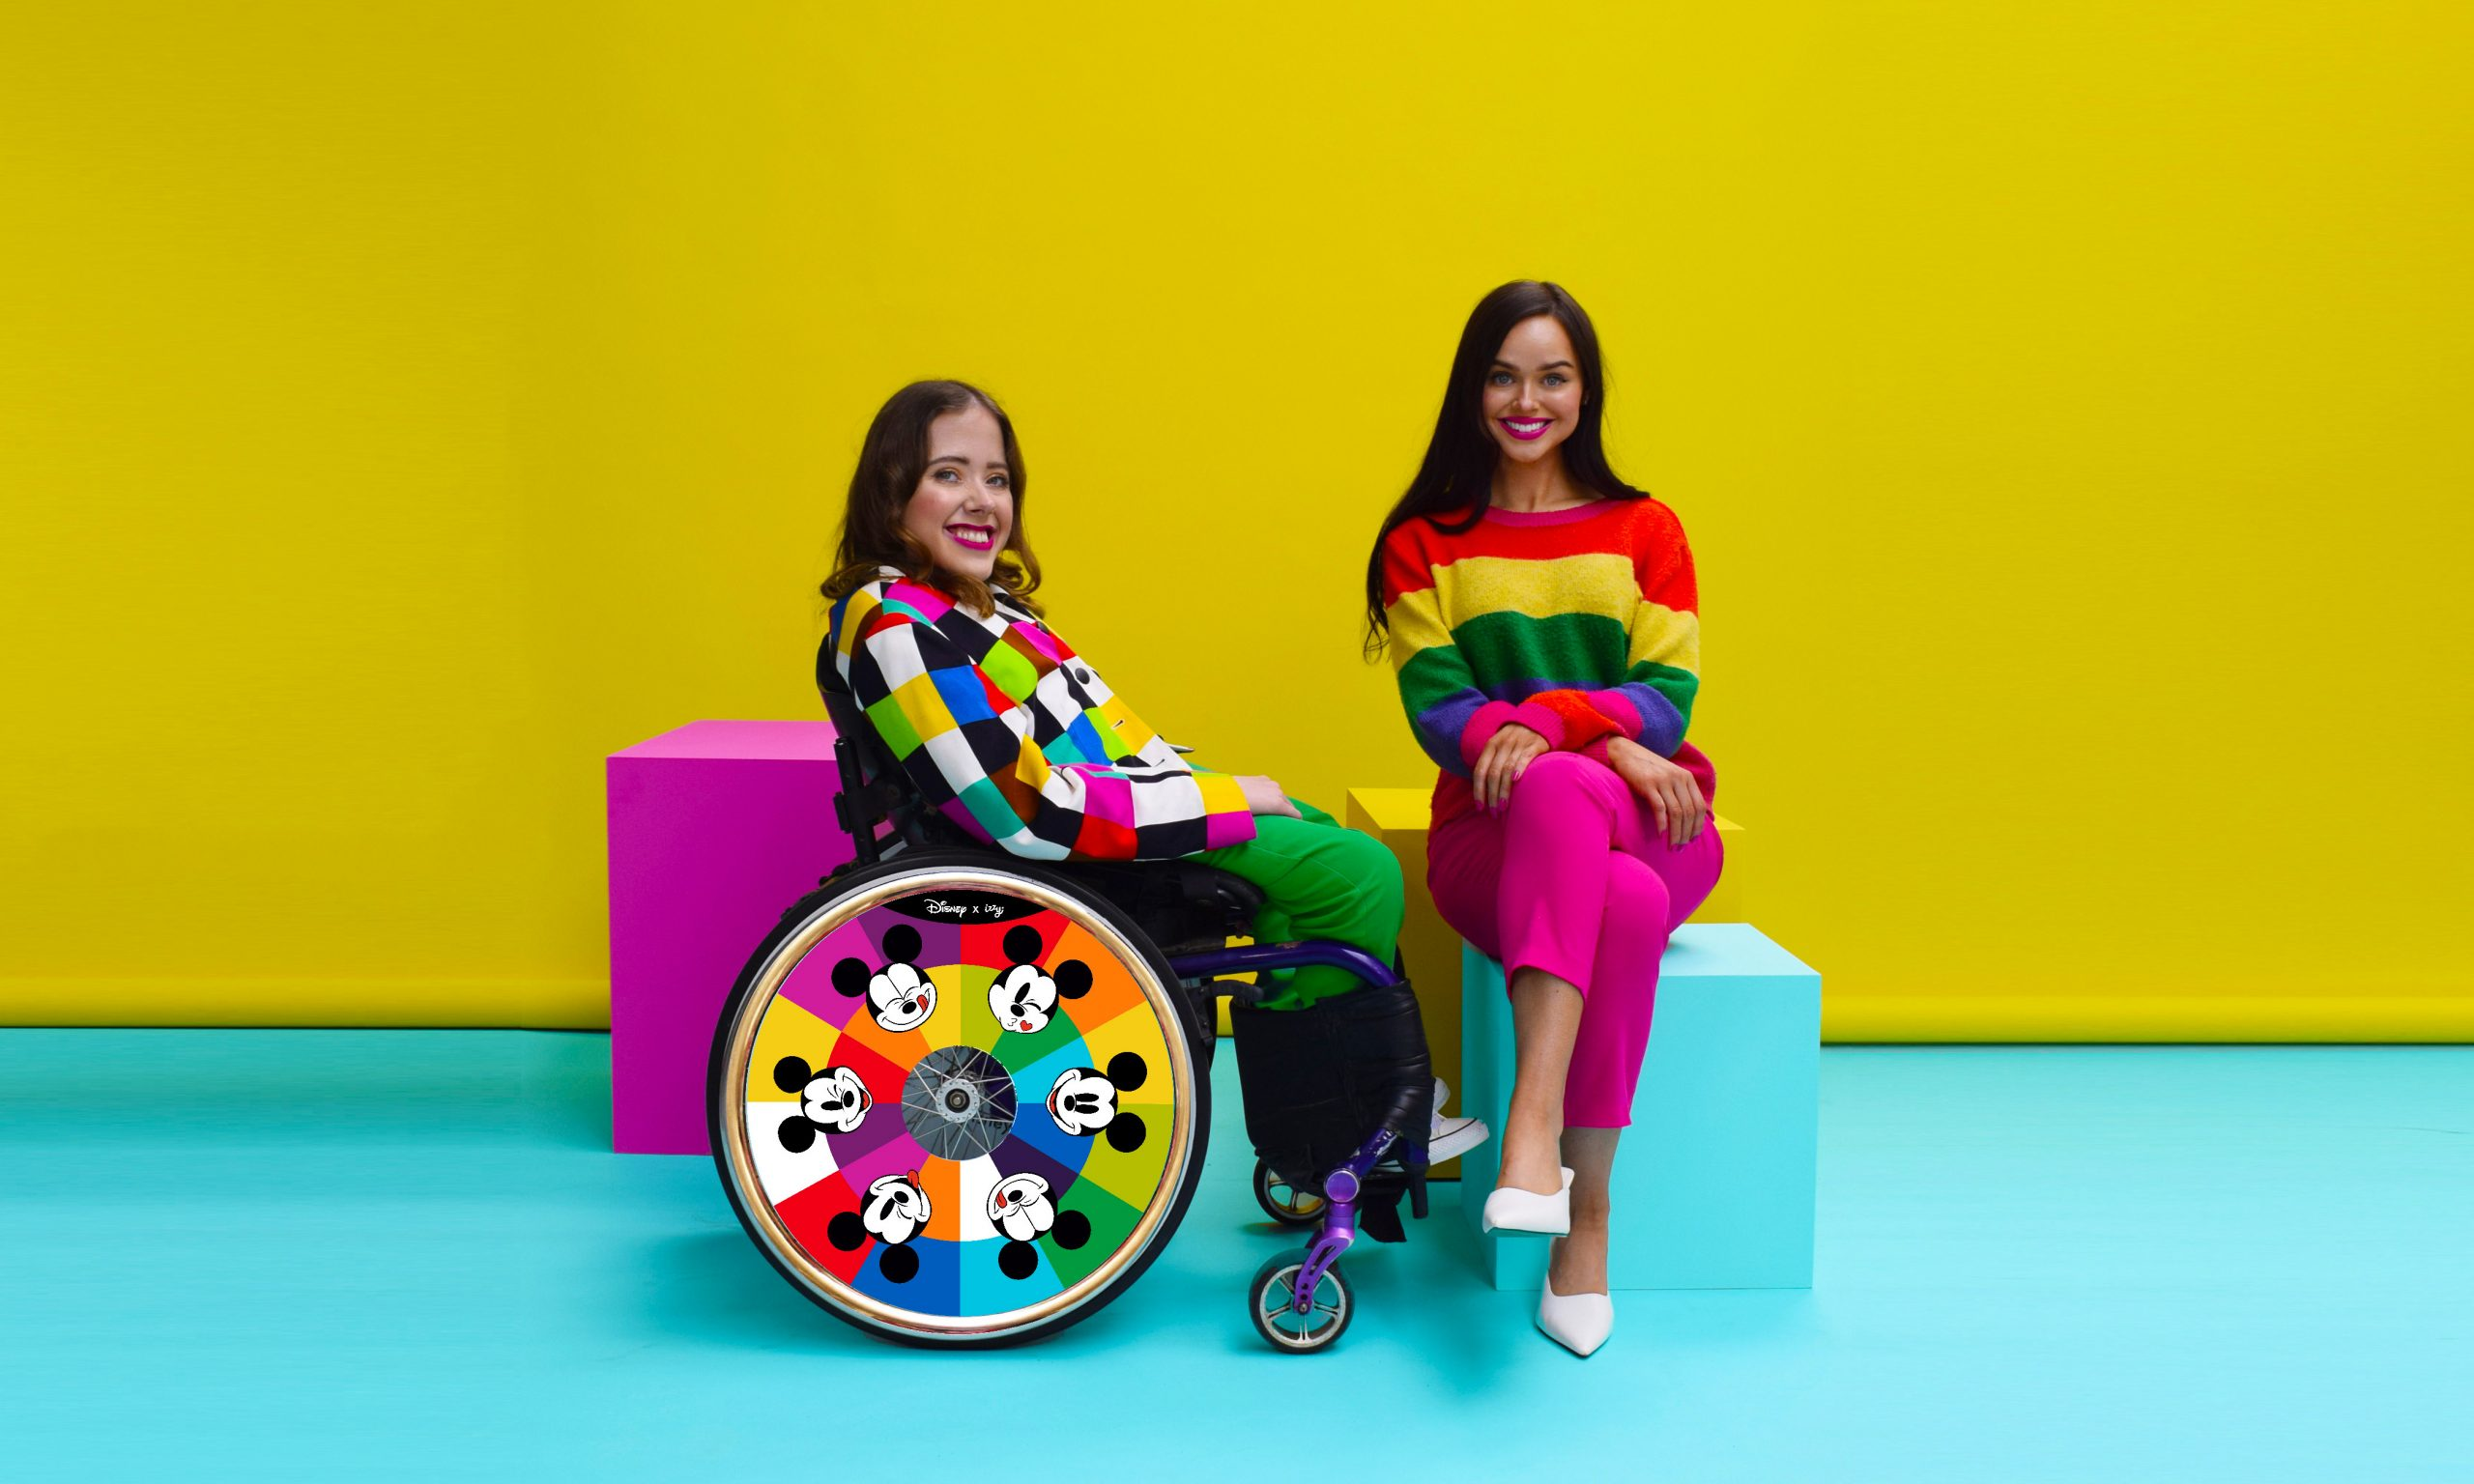 Disney teams up with Irish-based business Izzy Wheels to launch fashionable collection of wheelchair covers